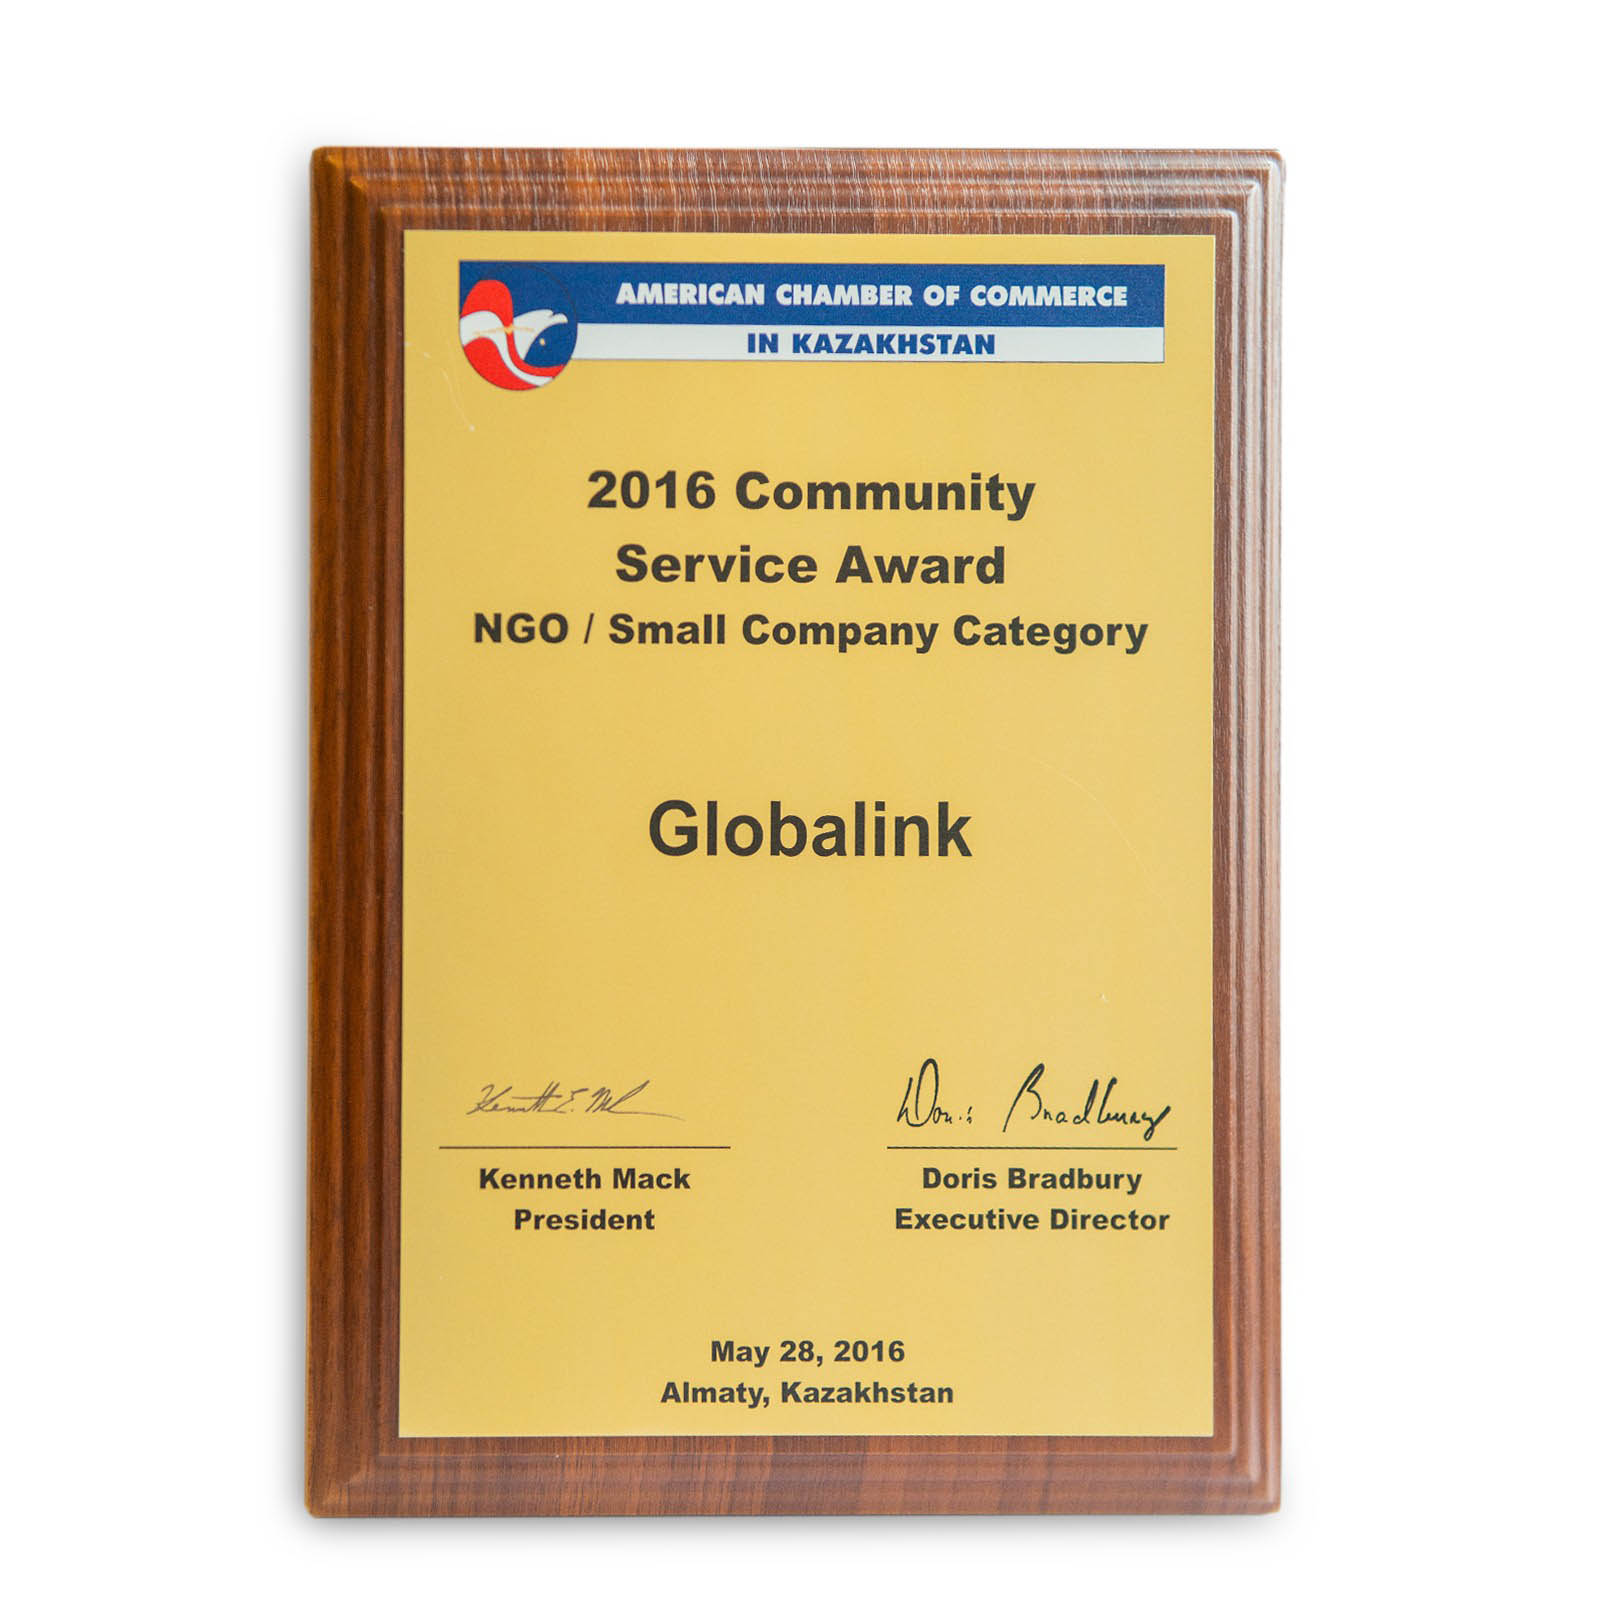 Community Service Award from Amcham